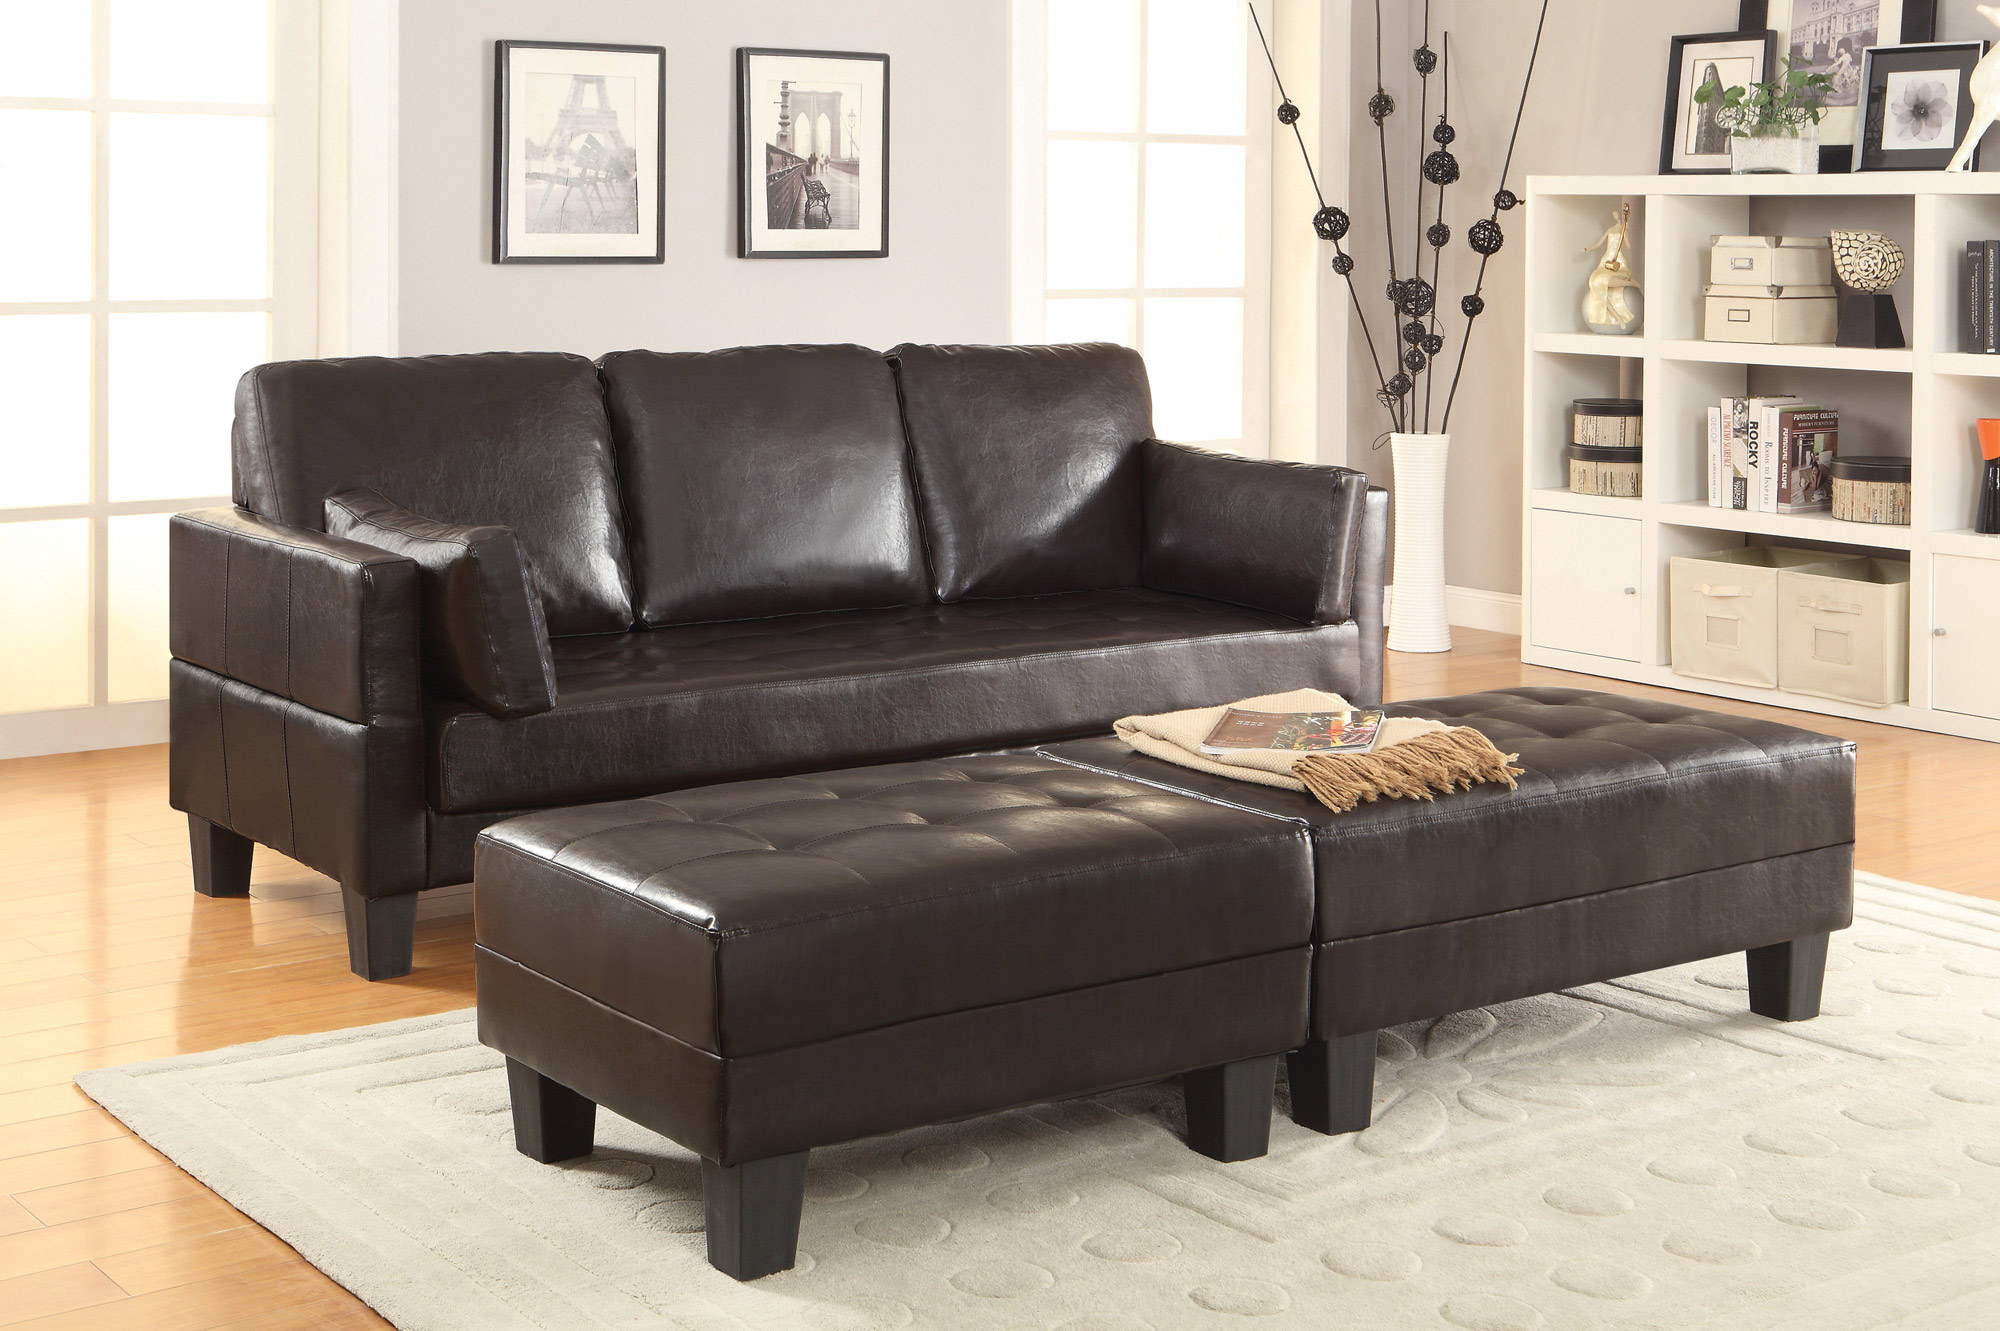 Astonishing Sofa Bed W 2 Ottomans Coaster Home Gallery Stores Dailytribune Chair Design For Home Dailytribuneorg